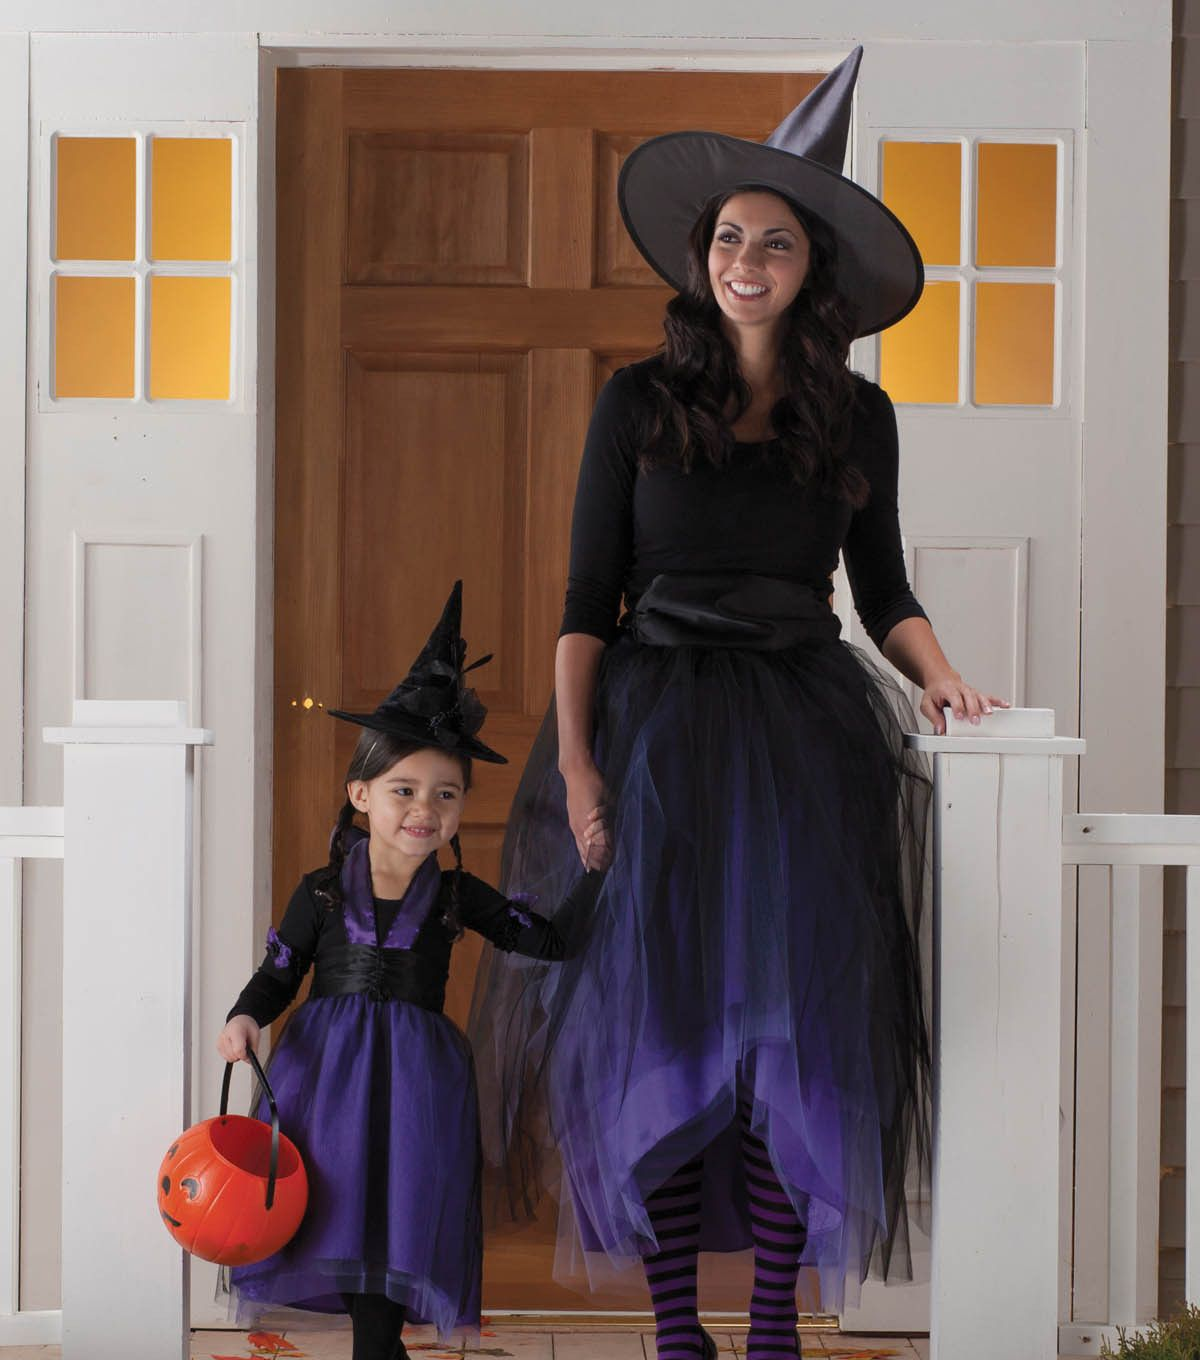 Mom u0026 Daughter Witch Costume  sc 1 st  Pinterest & Mom u0026 Daughter Witch Costume | Costumes | Pinterest | Witch costumes ...